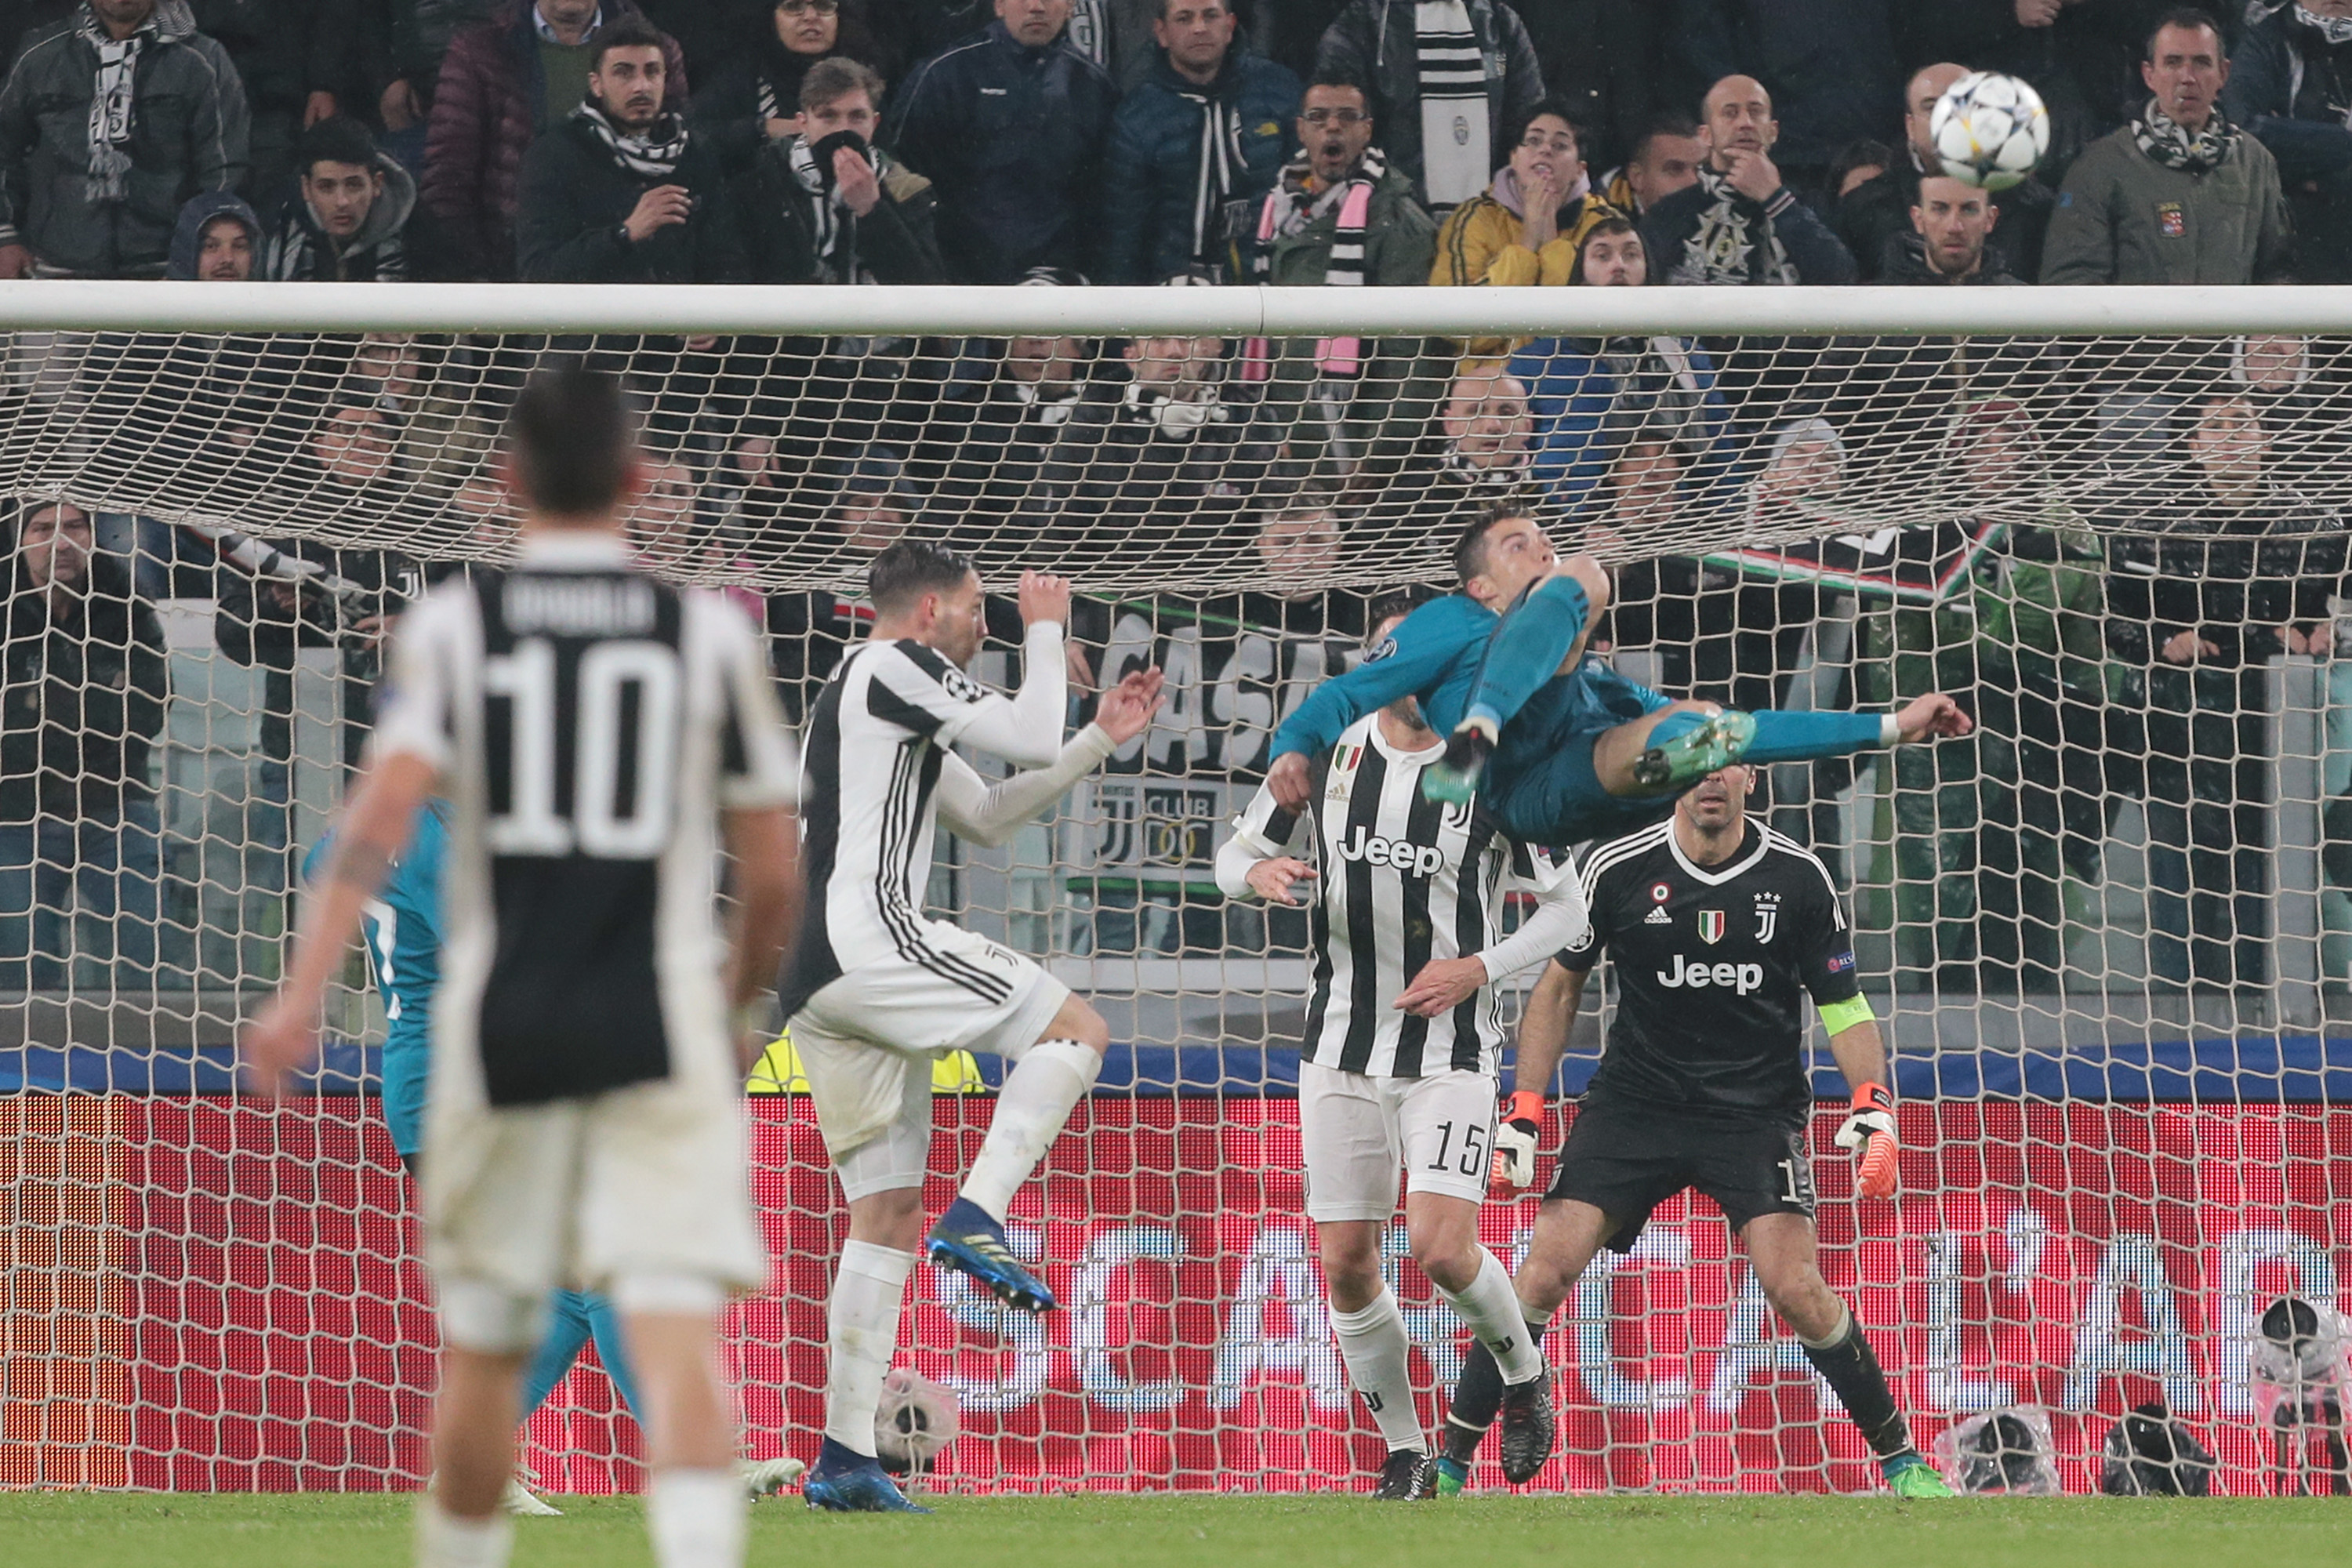 Look At This Sick 3 Picture Sequence From The Cristiano